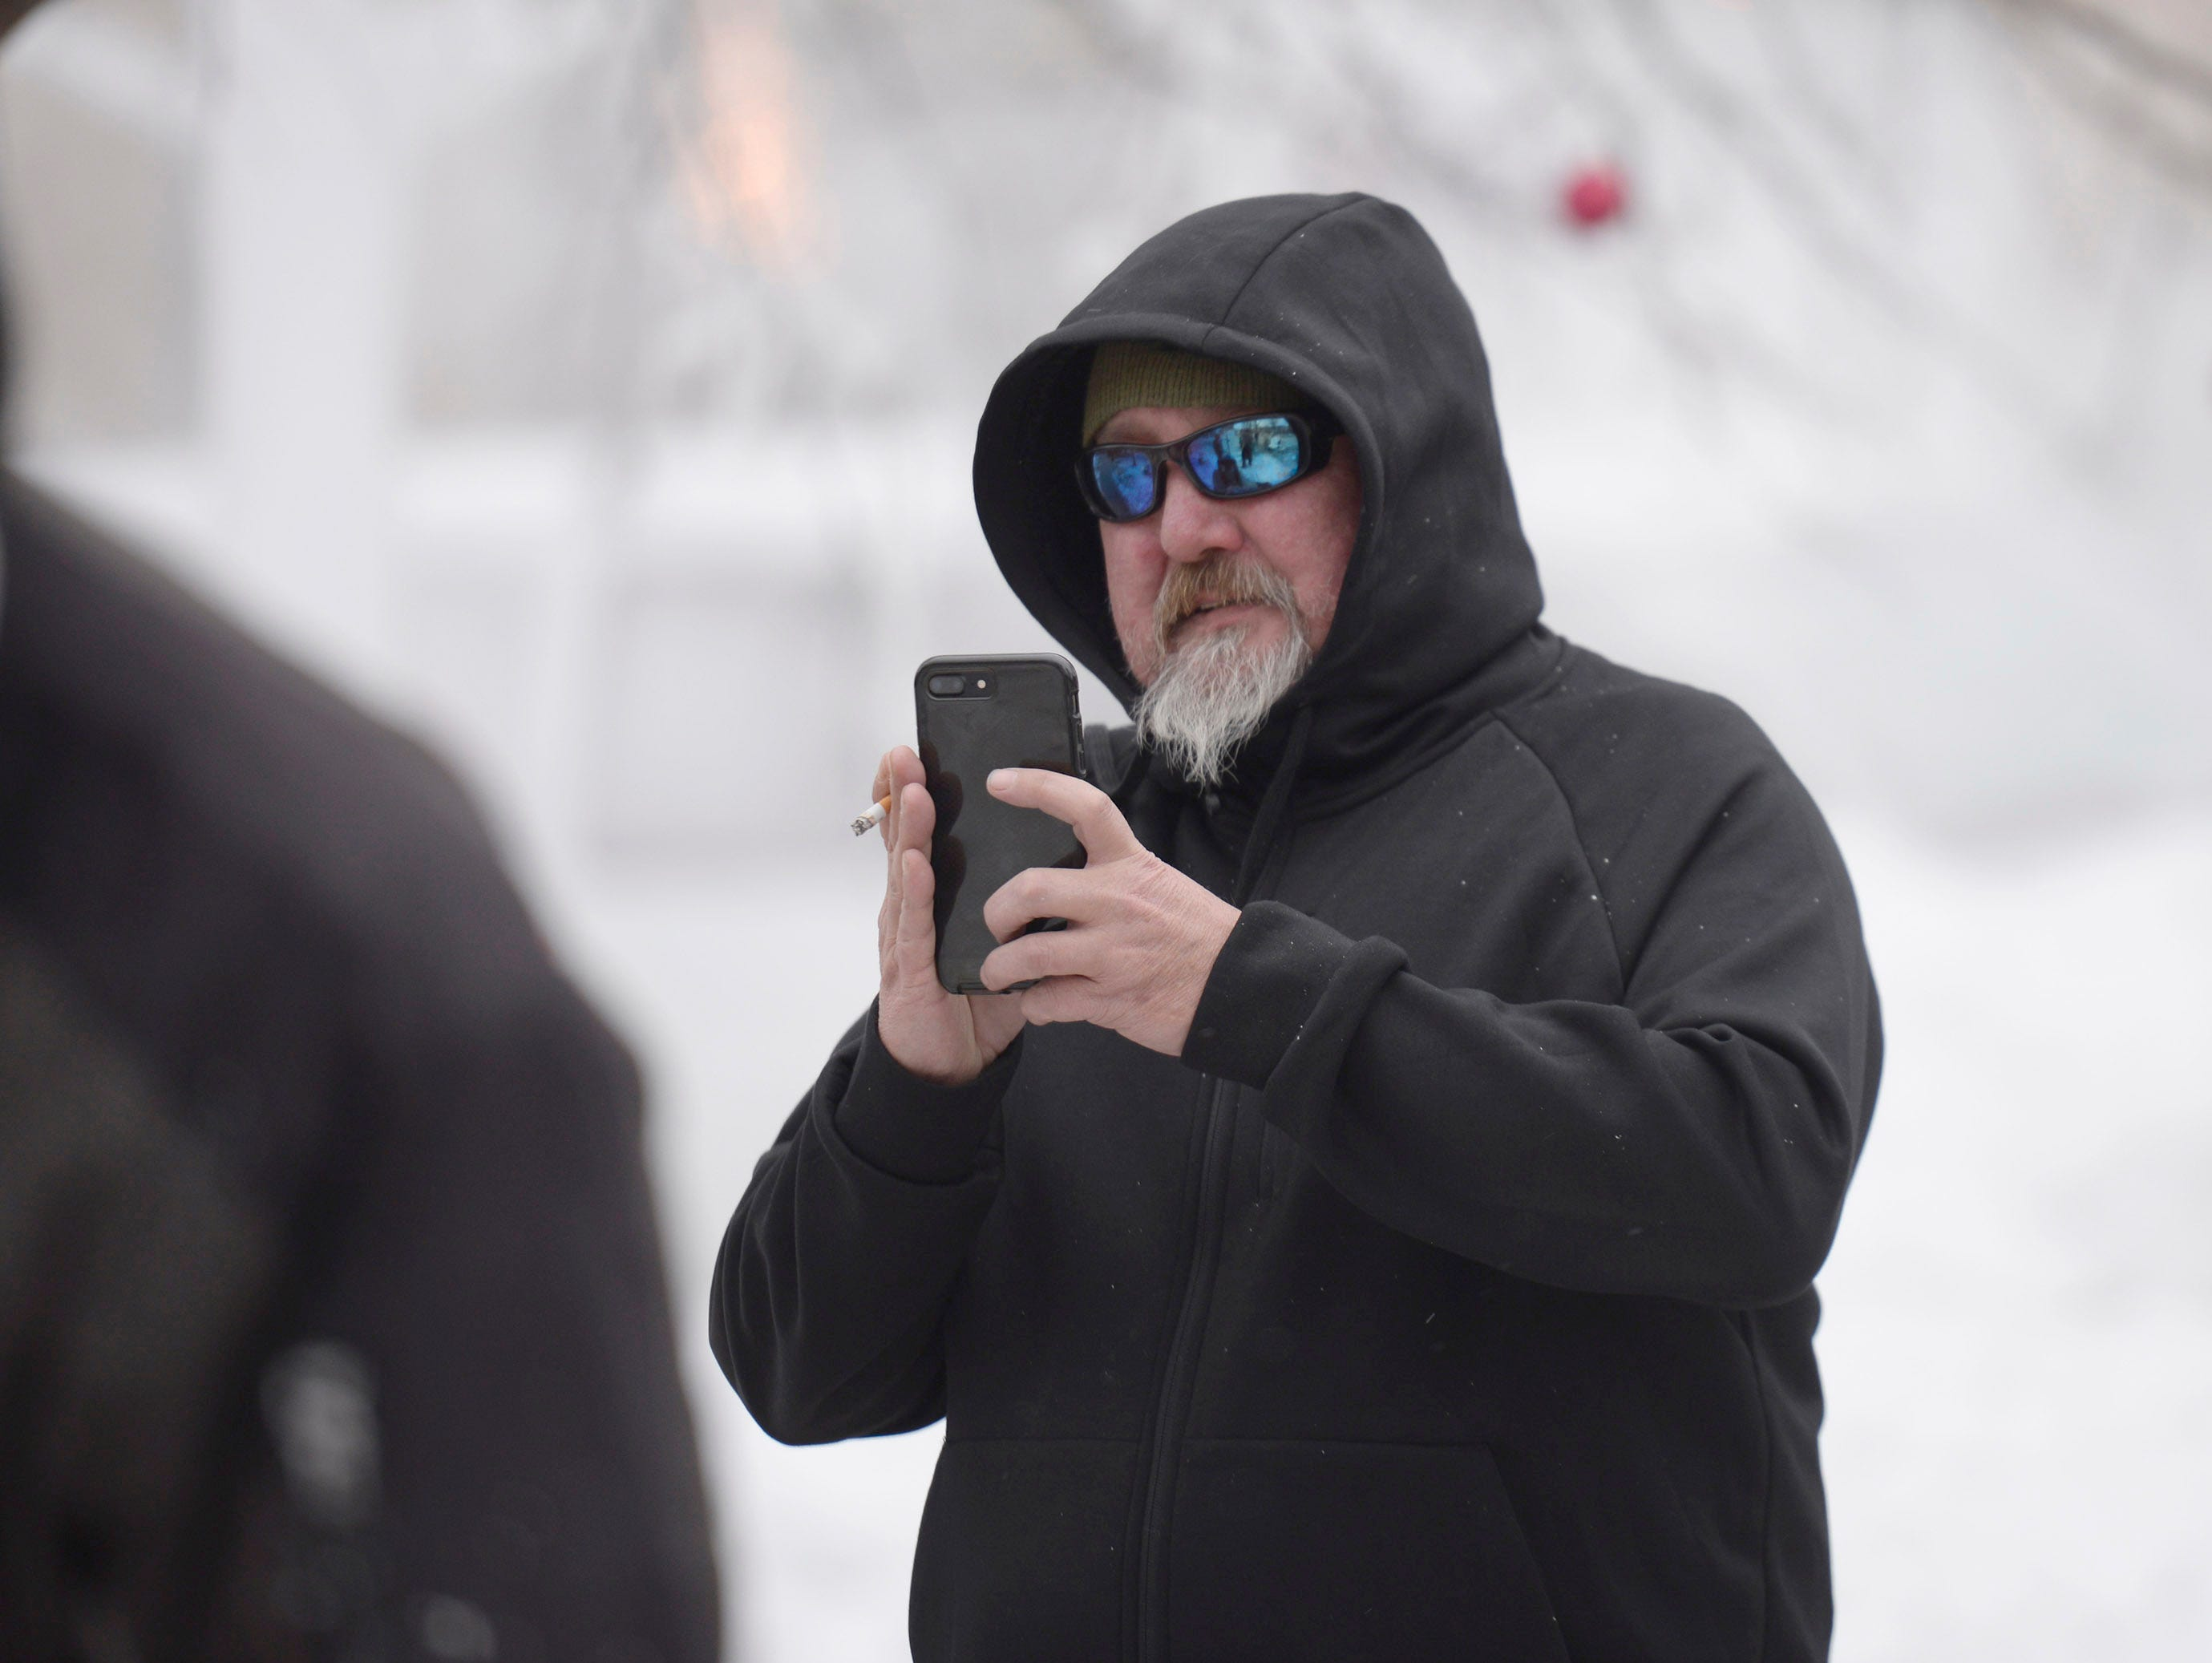 Eric Wollgast takes photos of crews carving ice at the Plymouth Ice Festival that runs Jan. 11-13.